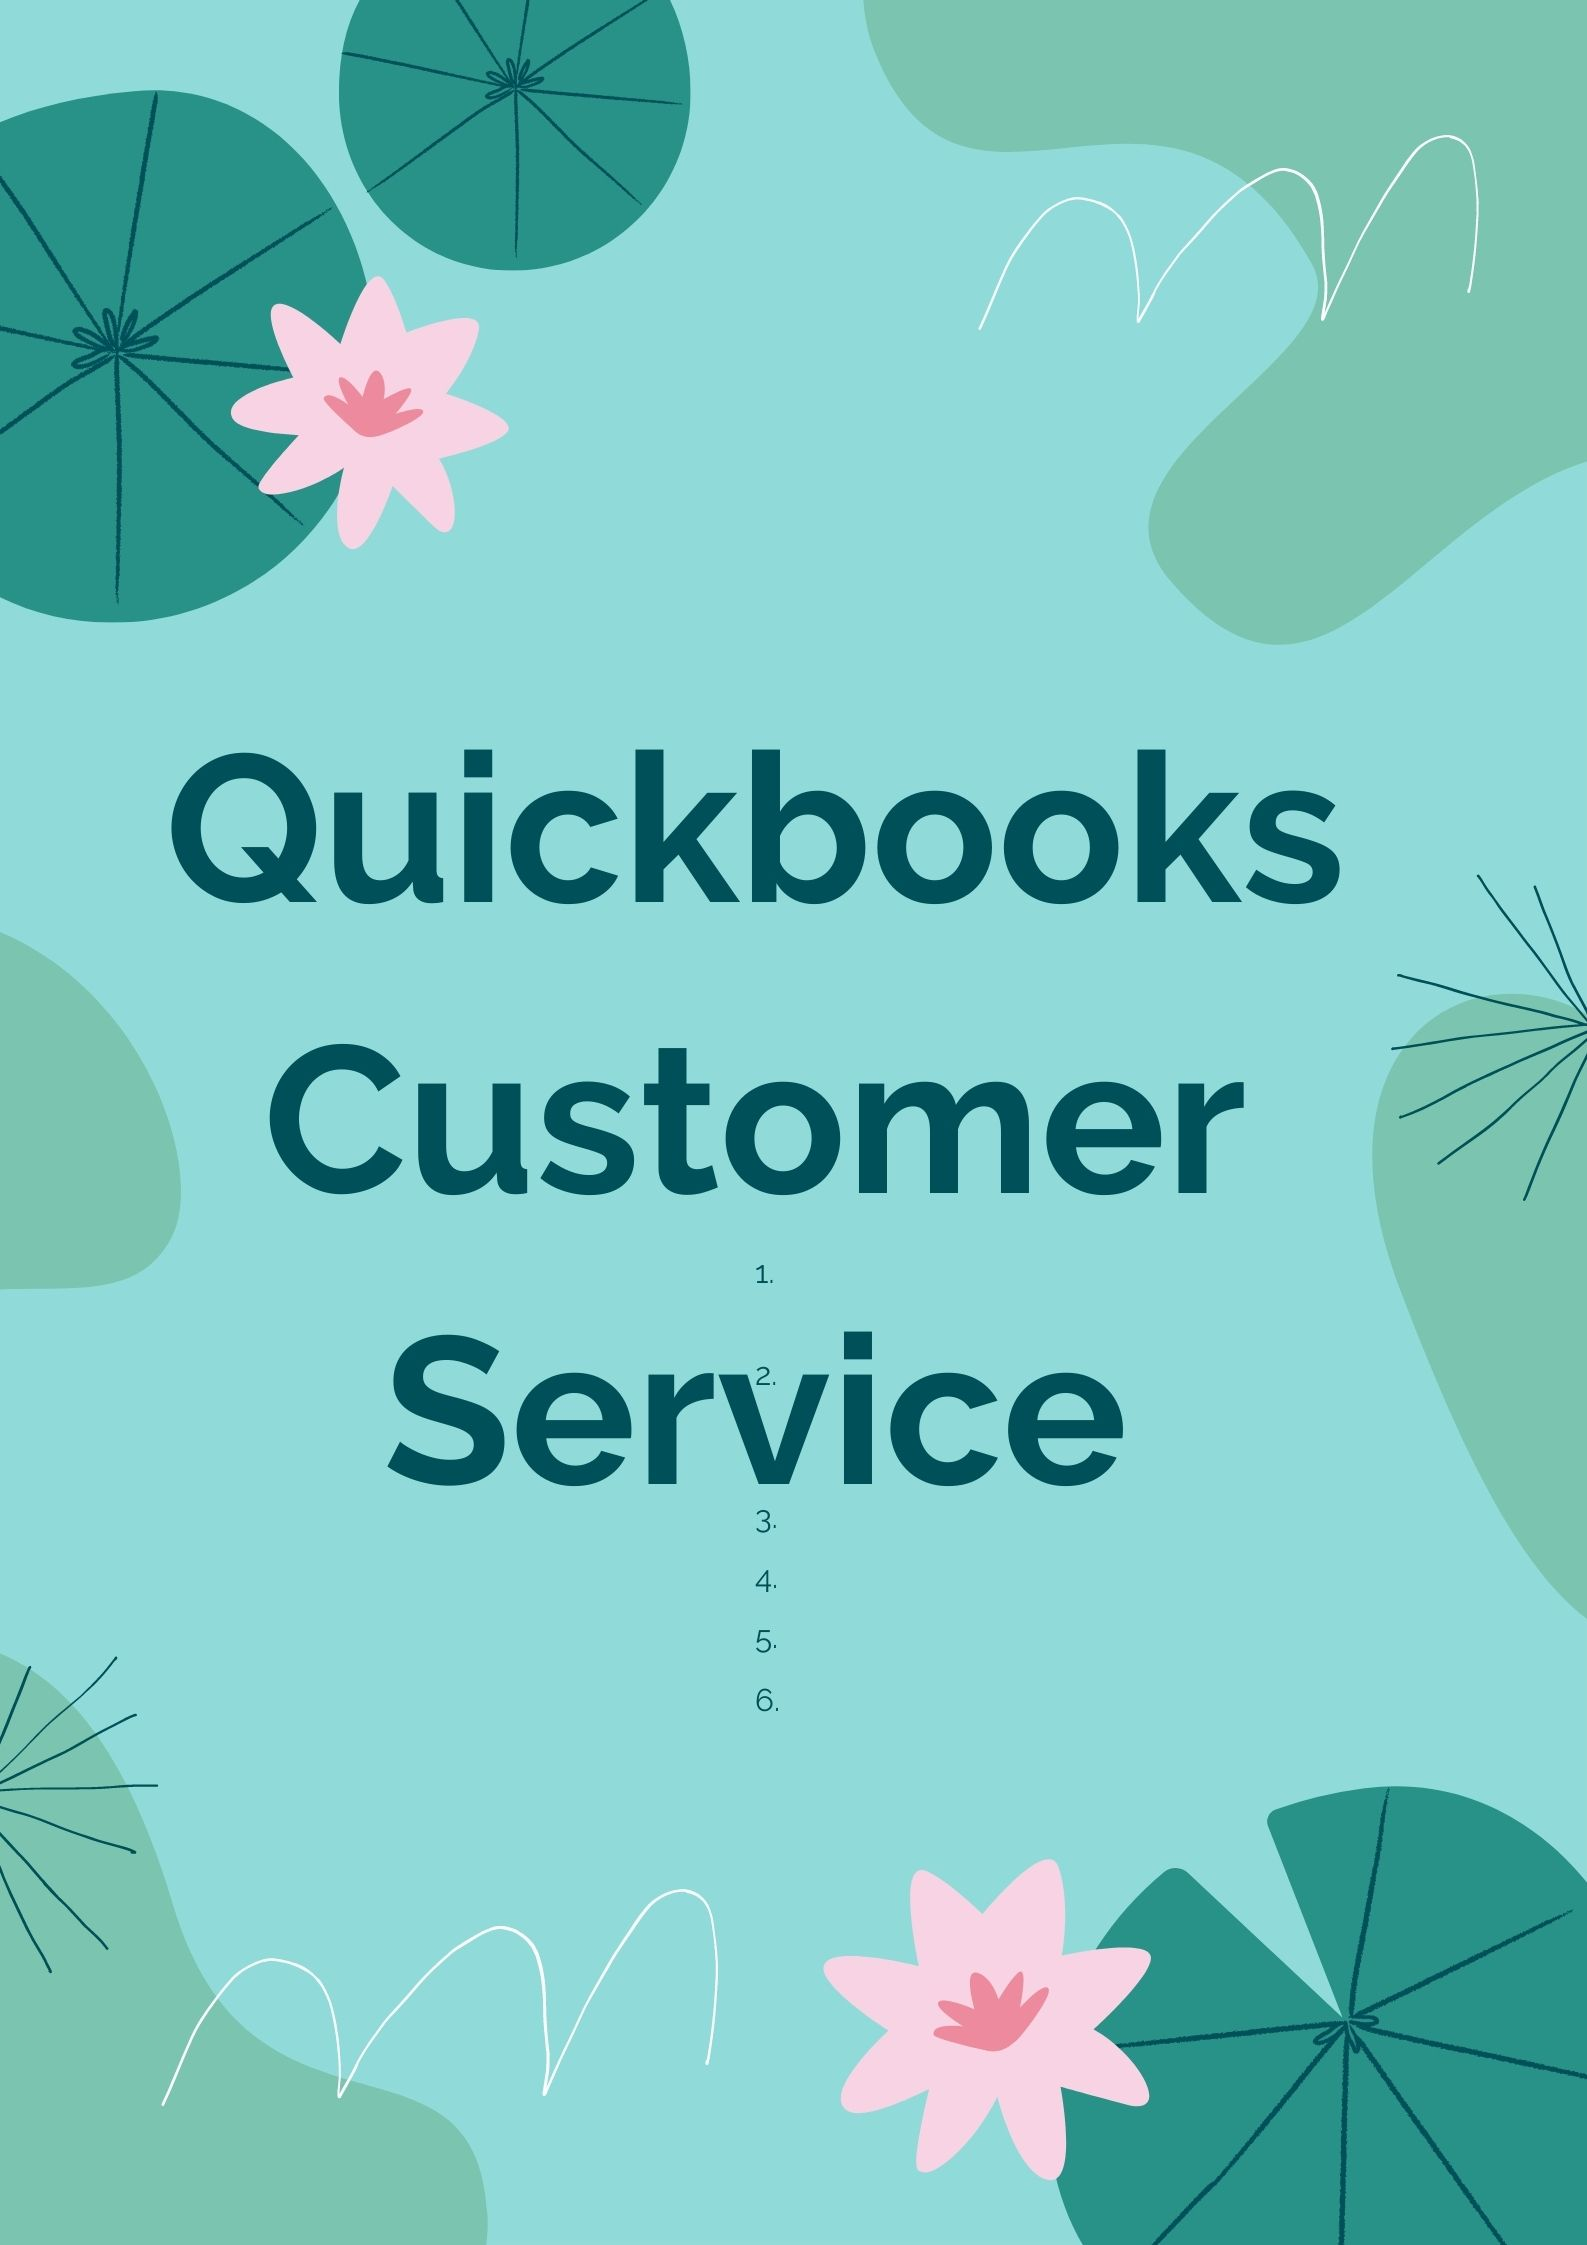 Attain top-notch services for QuickBooks issues at QuickBooks Customer Service 1 877-754-0099